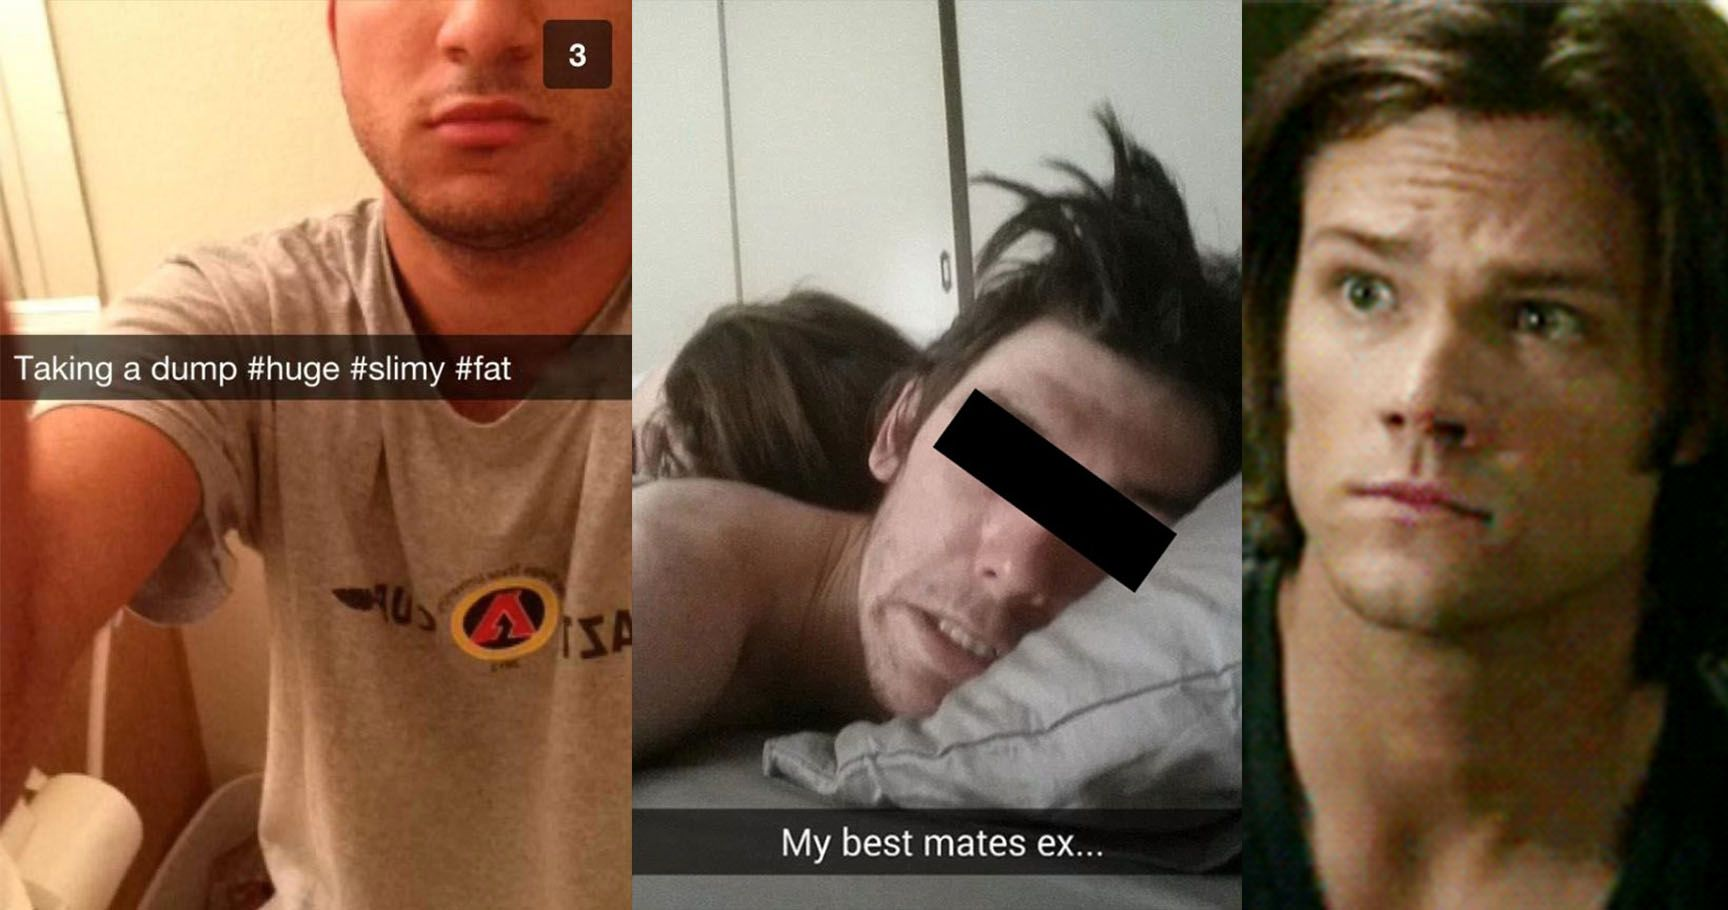 15 Deplorable People Who Need Their Snapchat Privileges Revoked